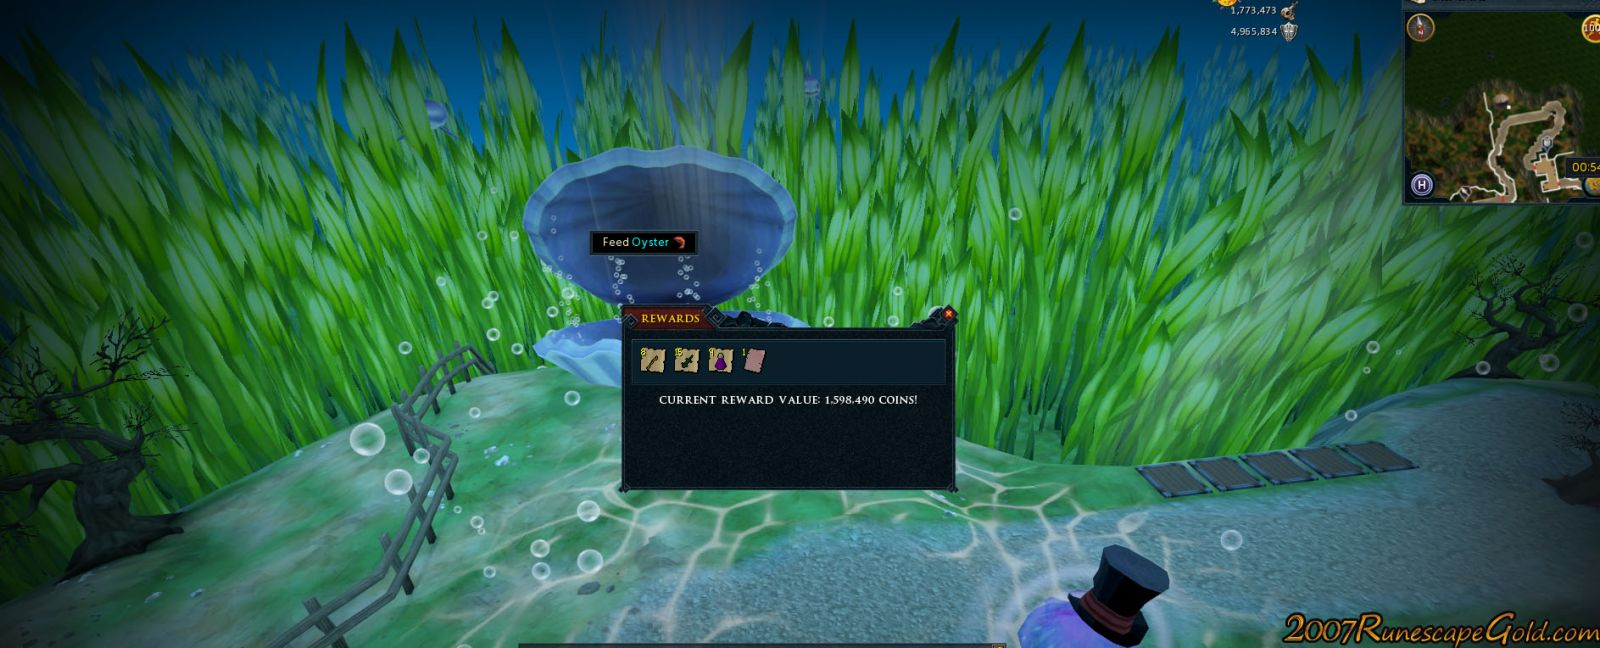 Thoughts On The Giant Oyster In Runescape